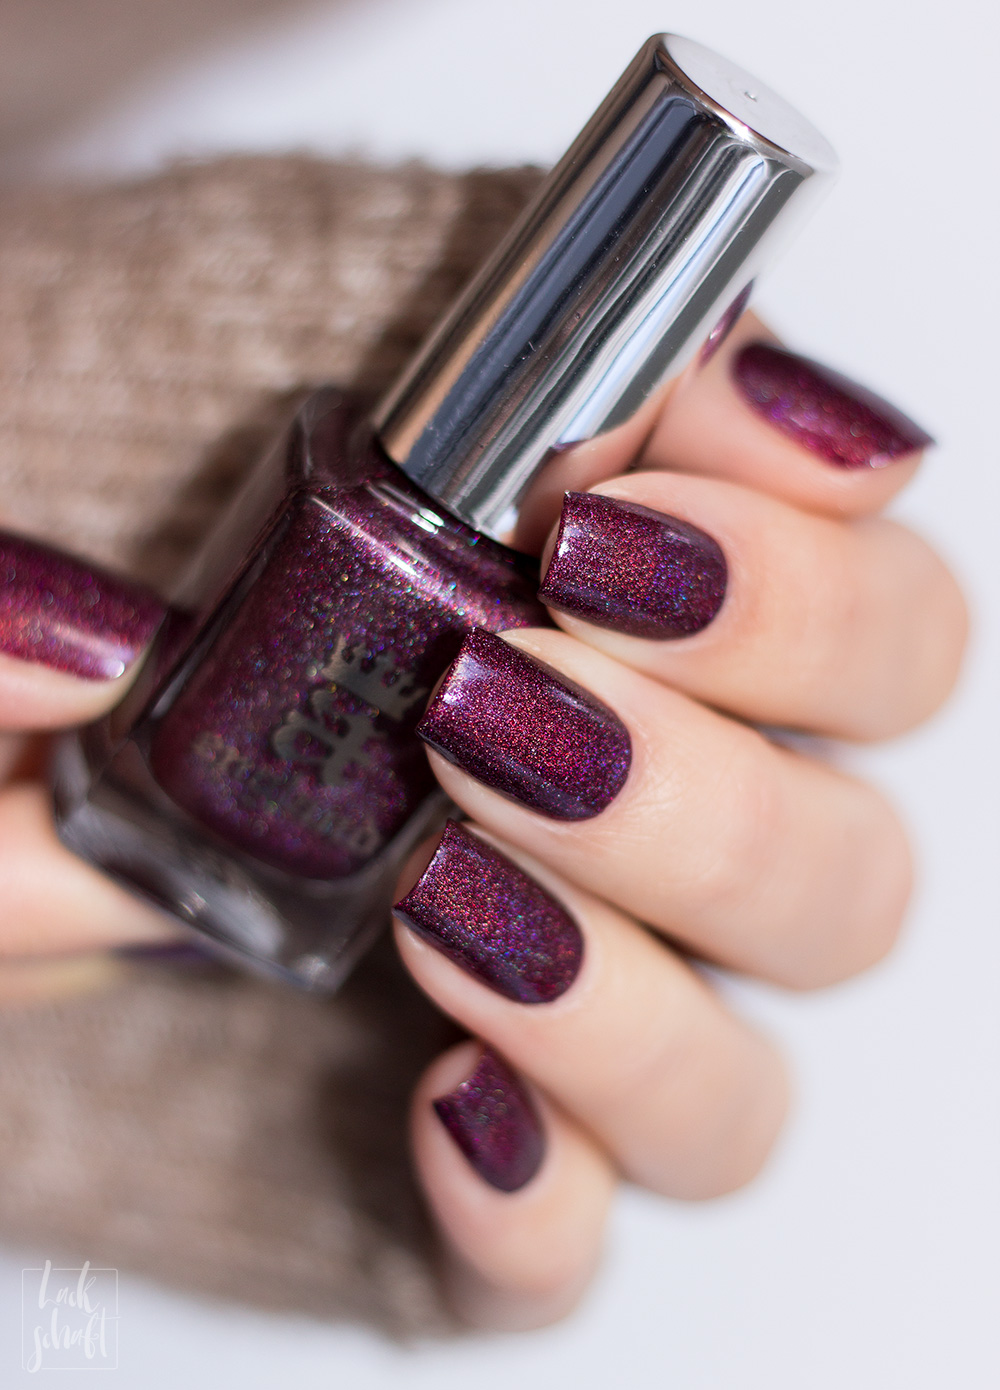 A-England-Moment-with-virgina-Collection-Virgina-Woolf-Red-Violett-Holo-Swatch-3